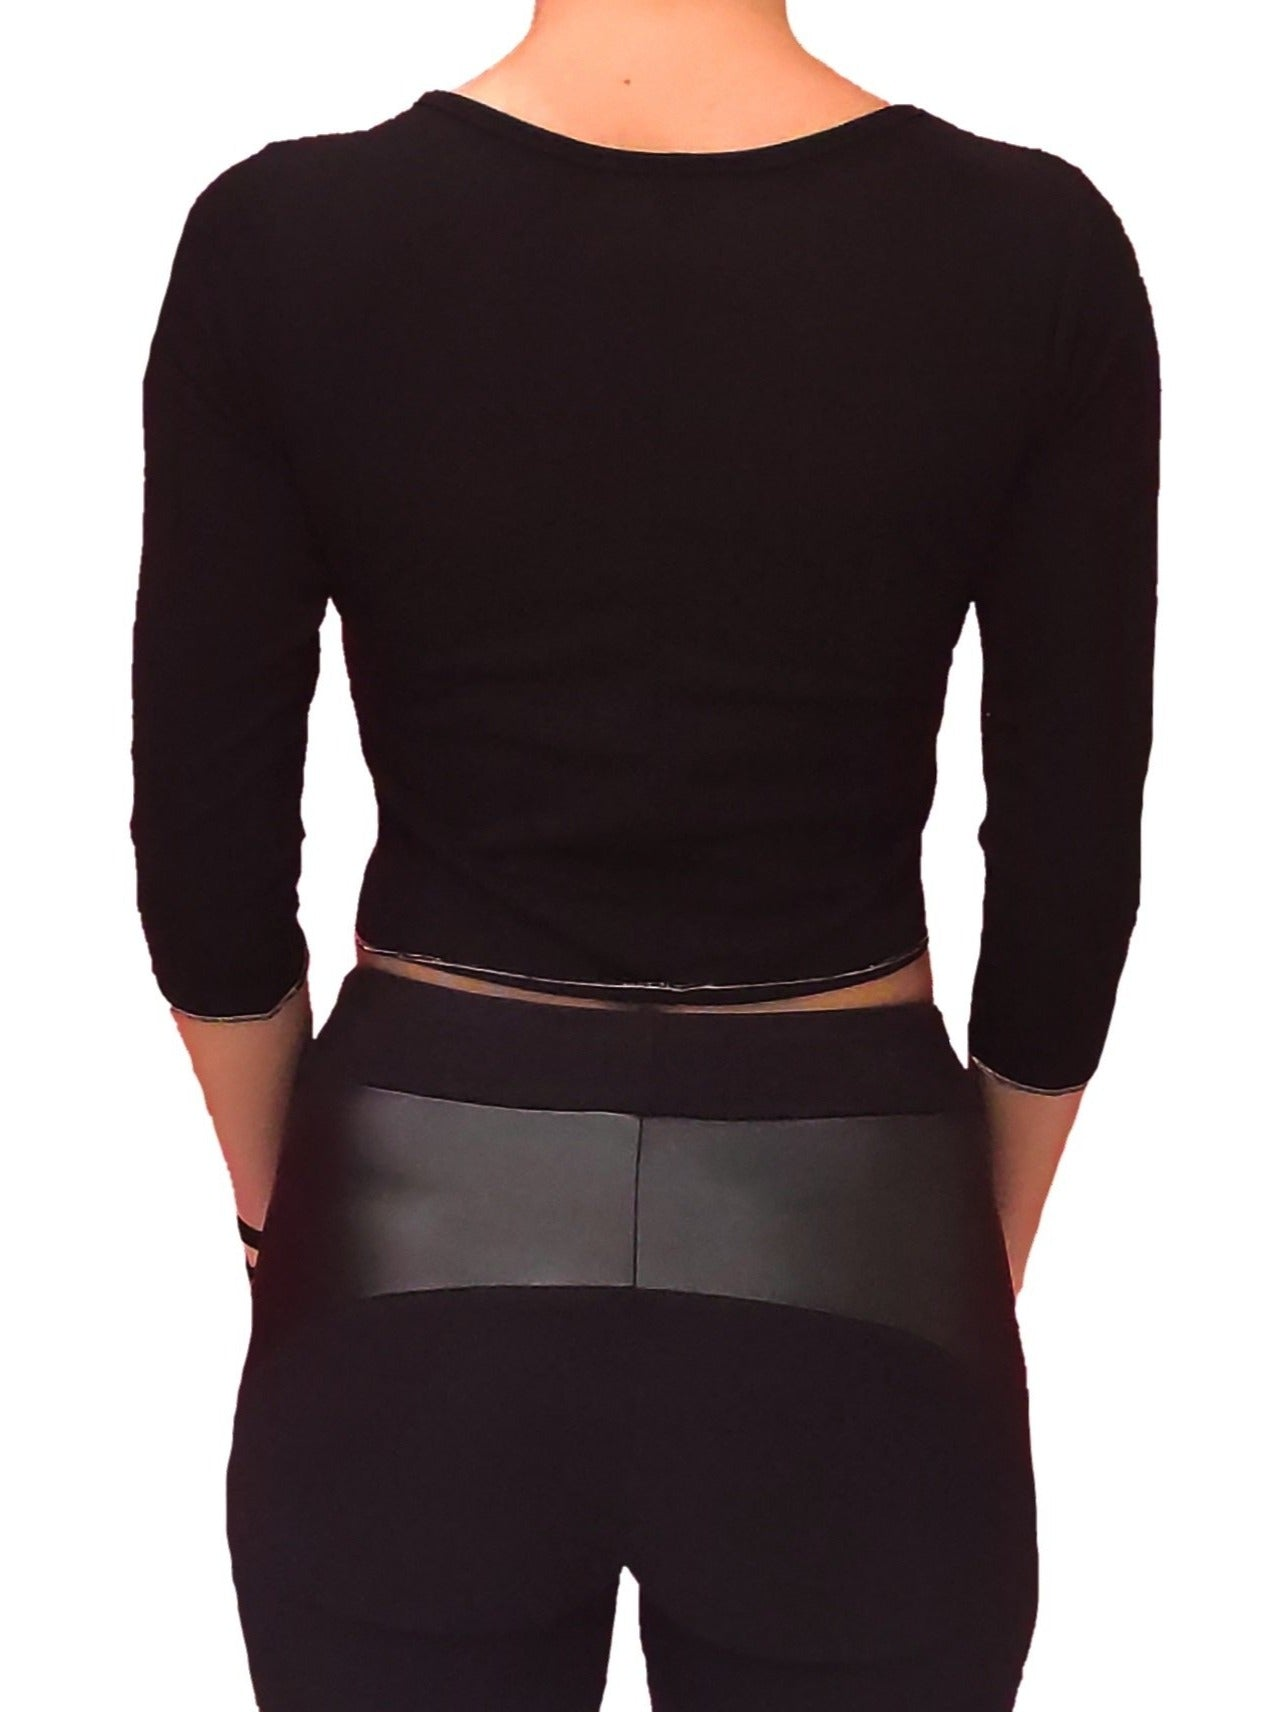 a-girl-wears-a-black-blouse-with-longsleeves-back-side